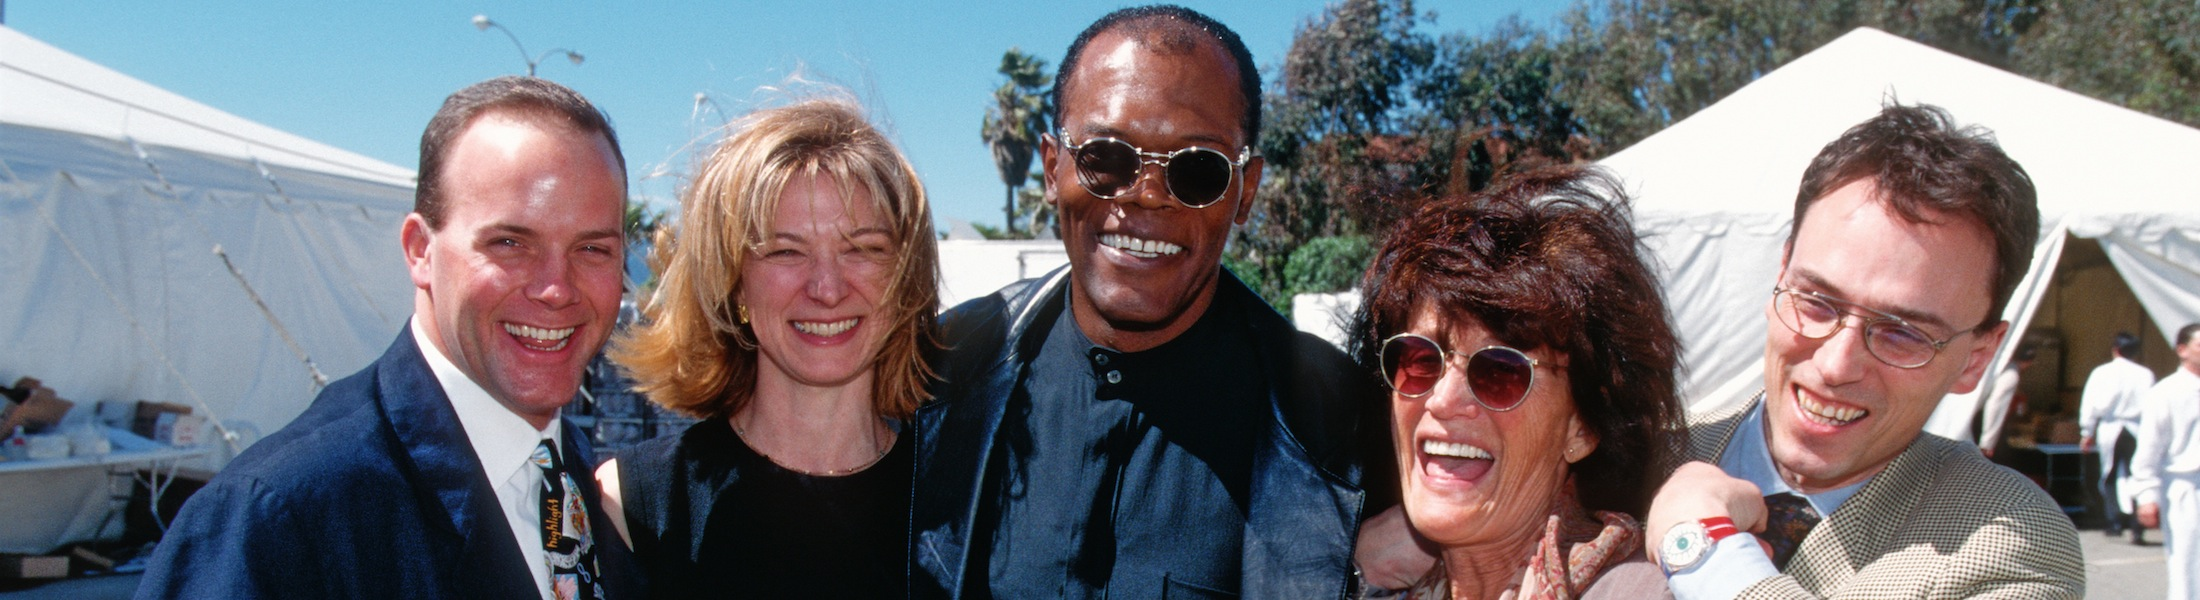 Dawn Hudson, Samuel L Jackson & others - 1995